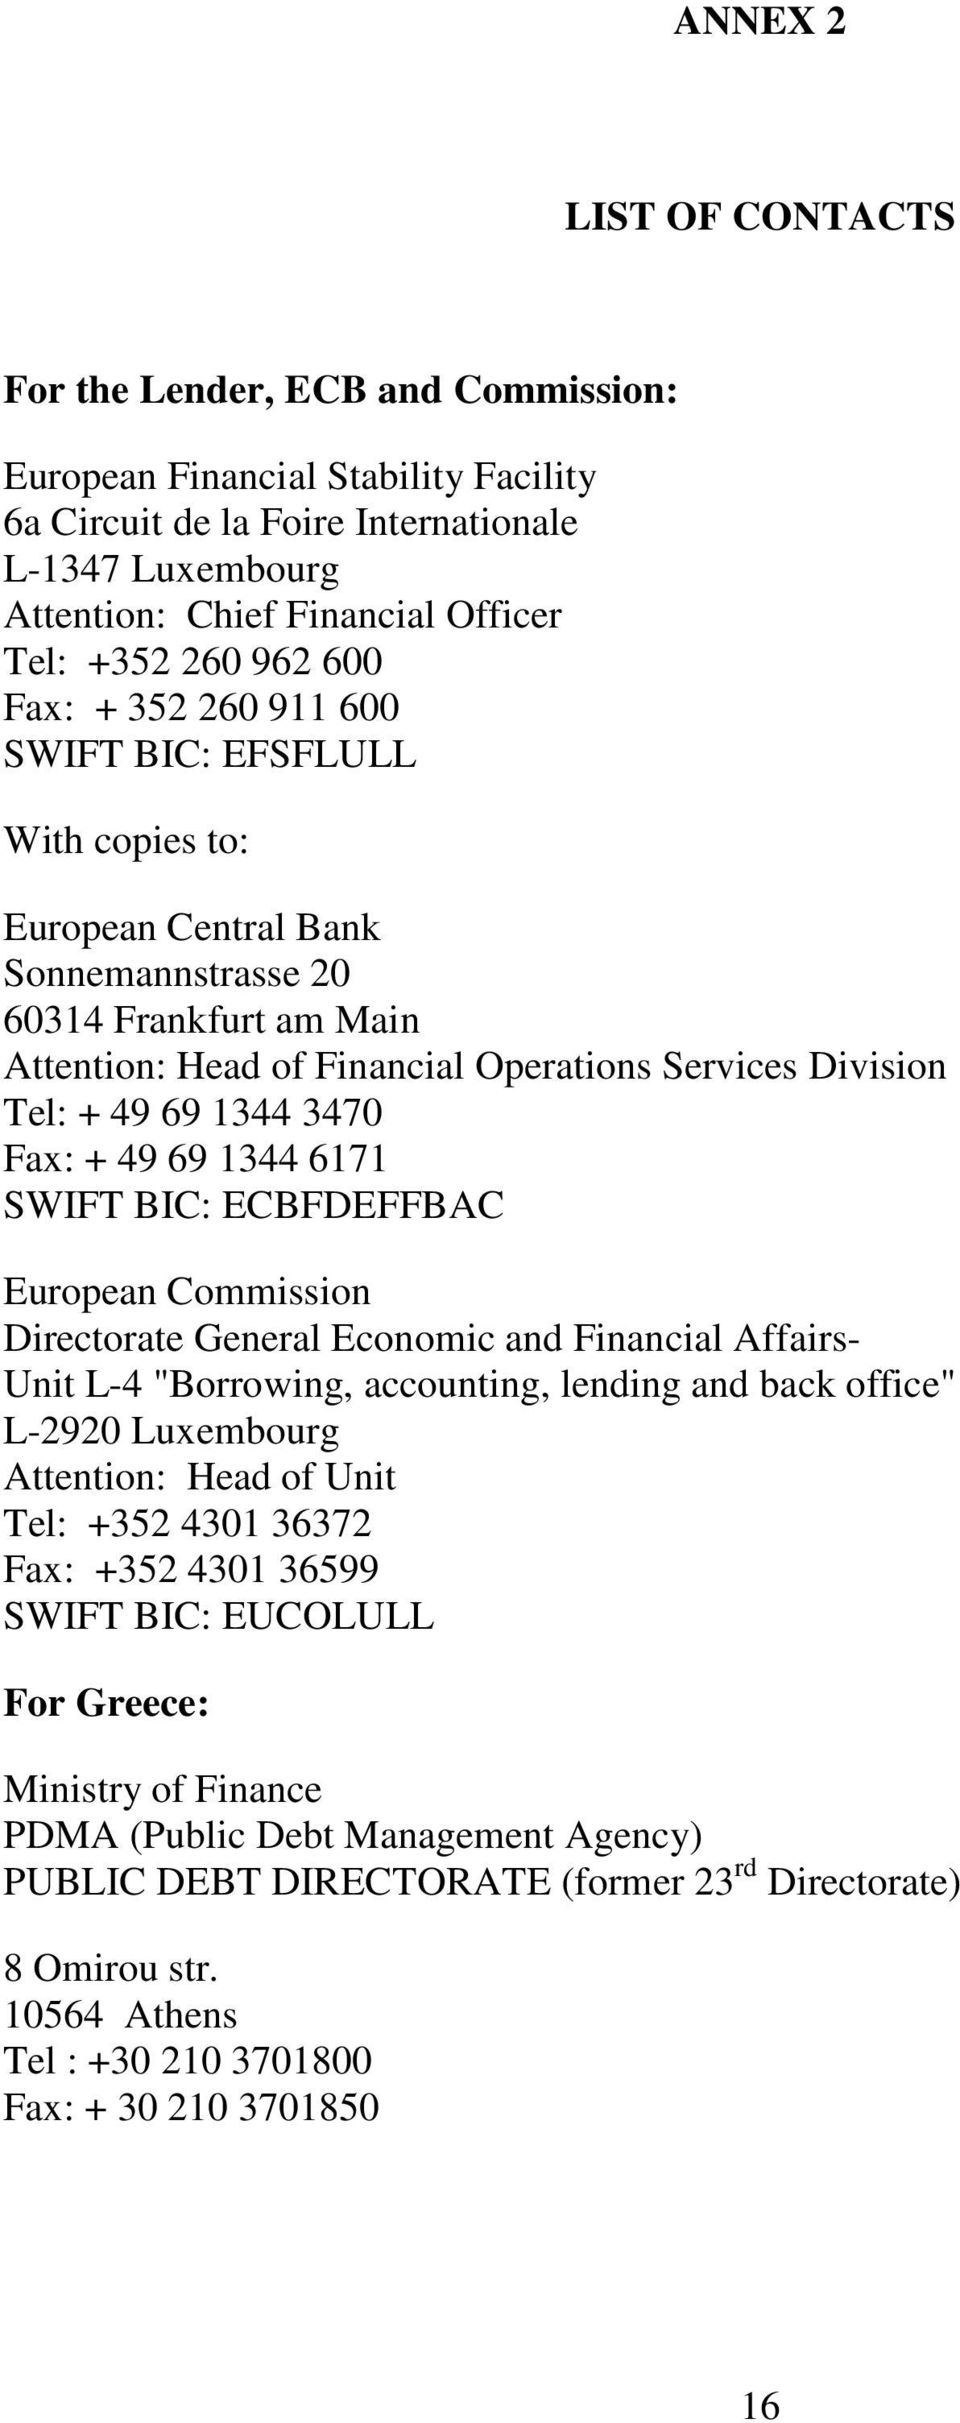 "+ 49 69 1344 3470 Fax: + 49 69 1344 6171 SWIFT BIC: ECBFDEFFBAC European Commission Directorate General Economic and Financial Affairs- Unit L-4 ""Borrowing, accounting, lending and back office"""